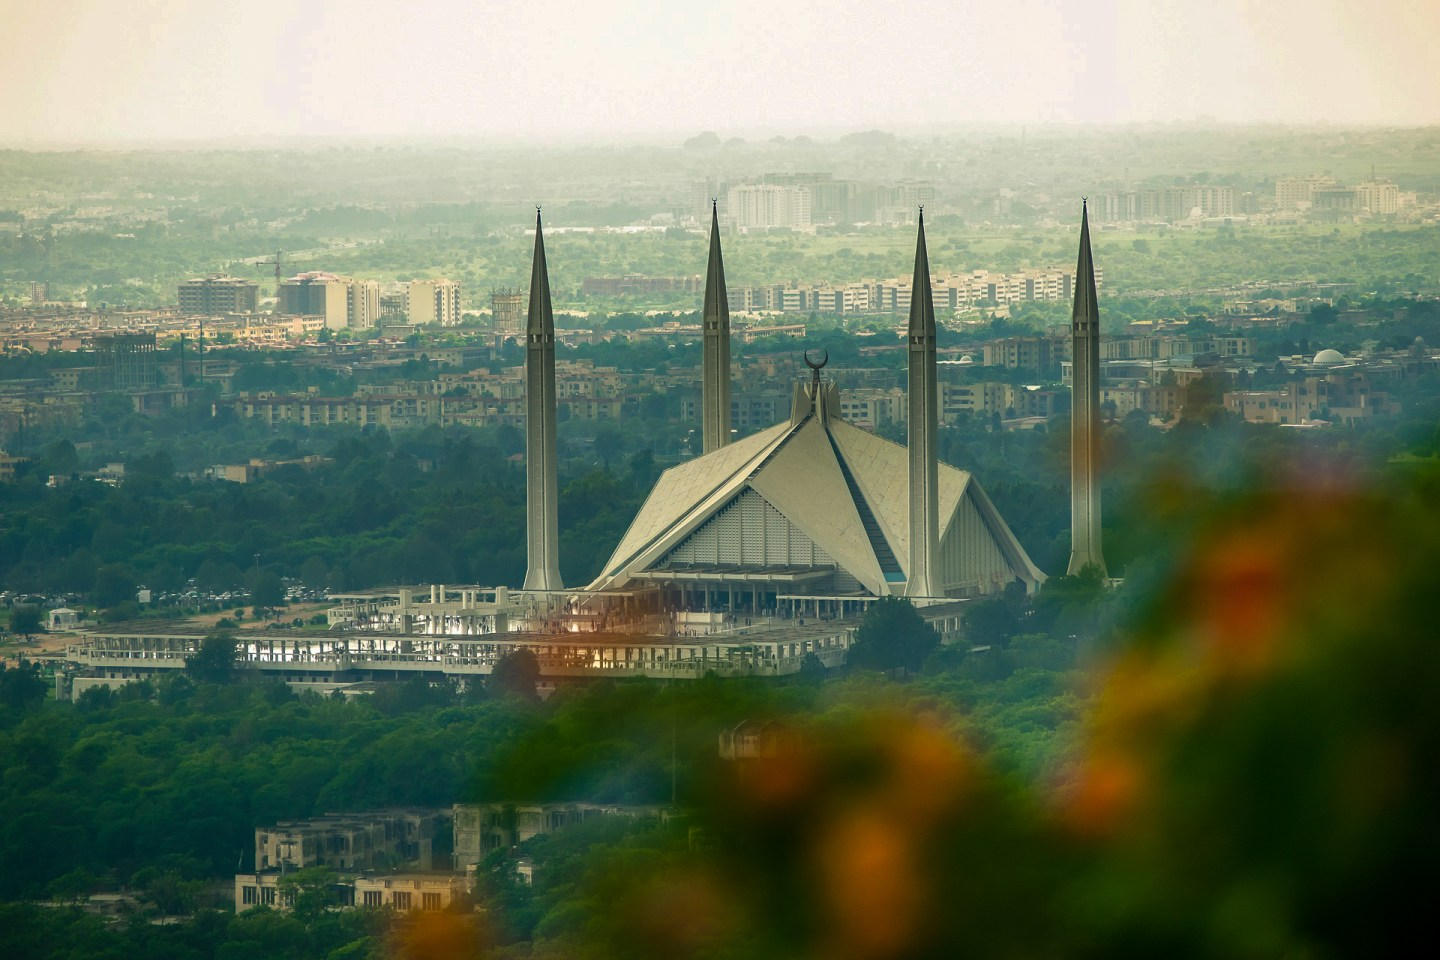 Faisal Mosque - Pakistan - green stimulus